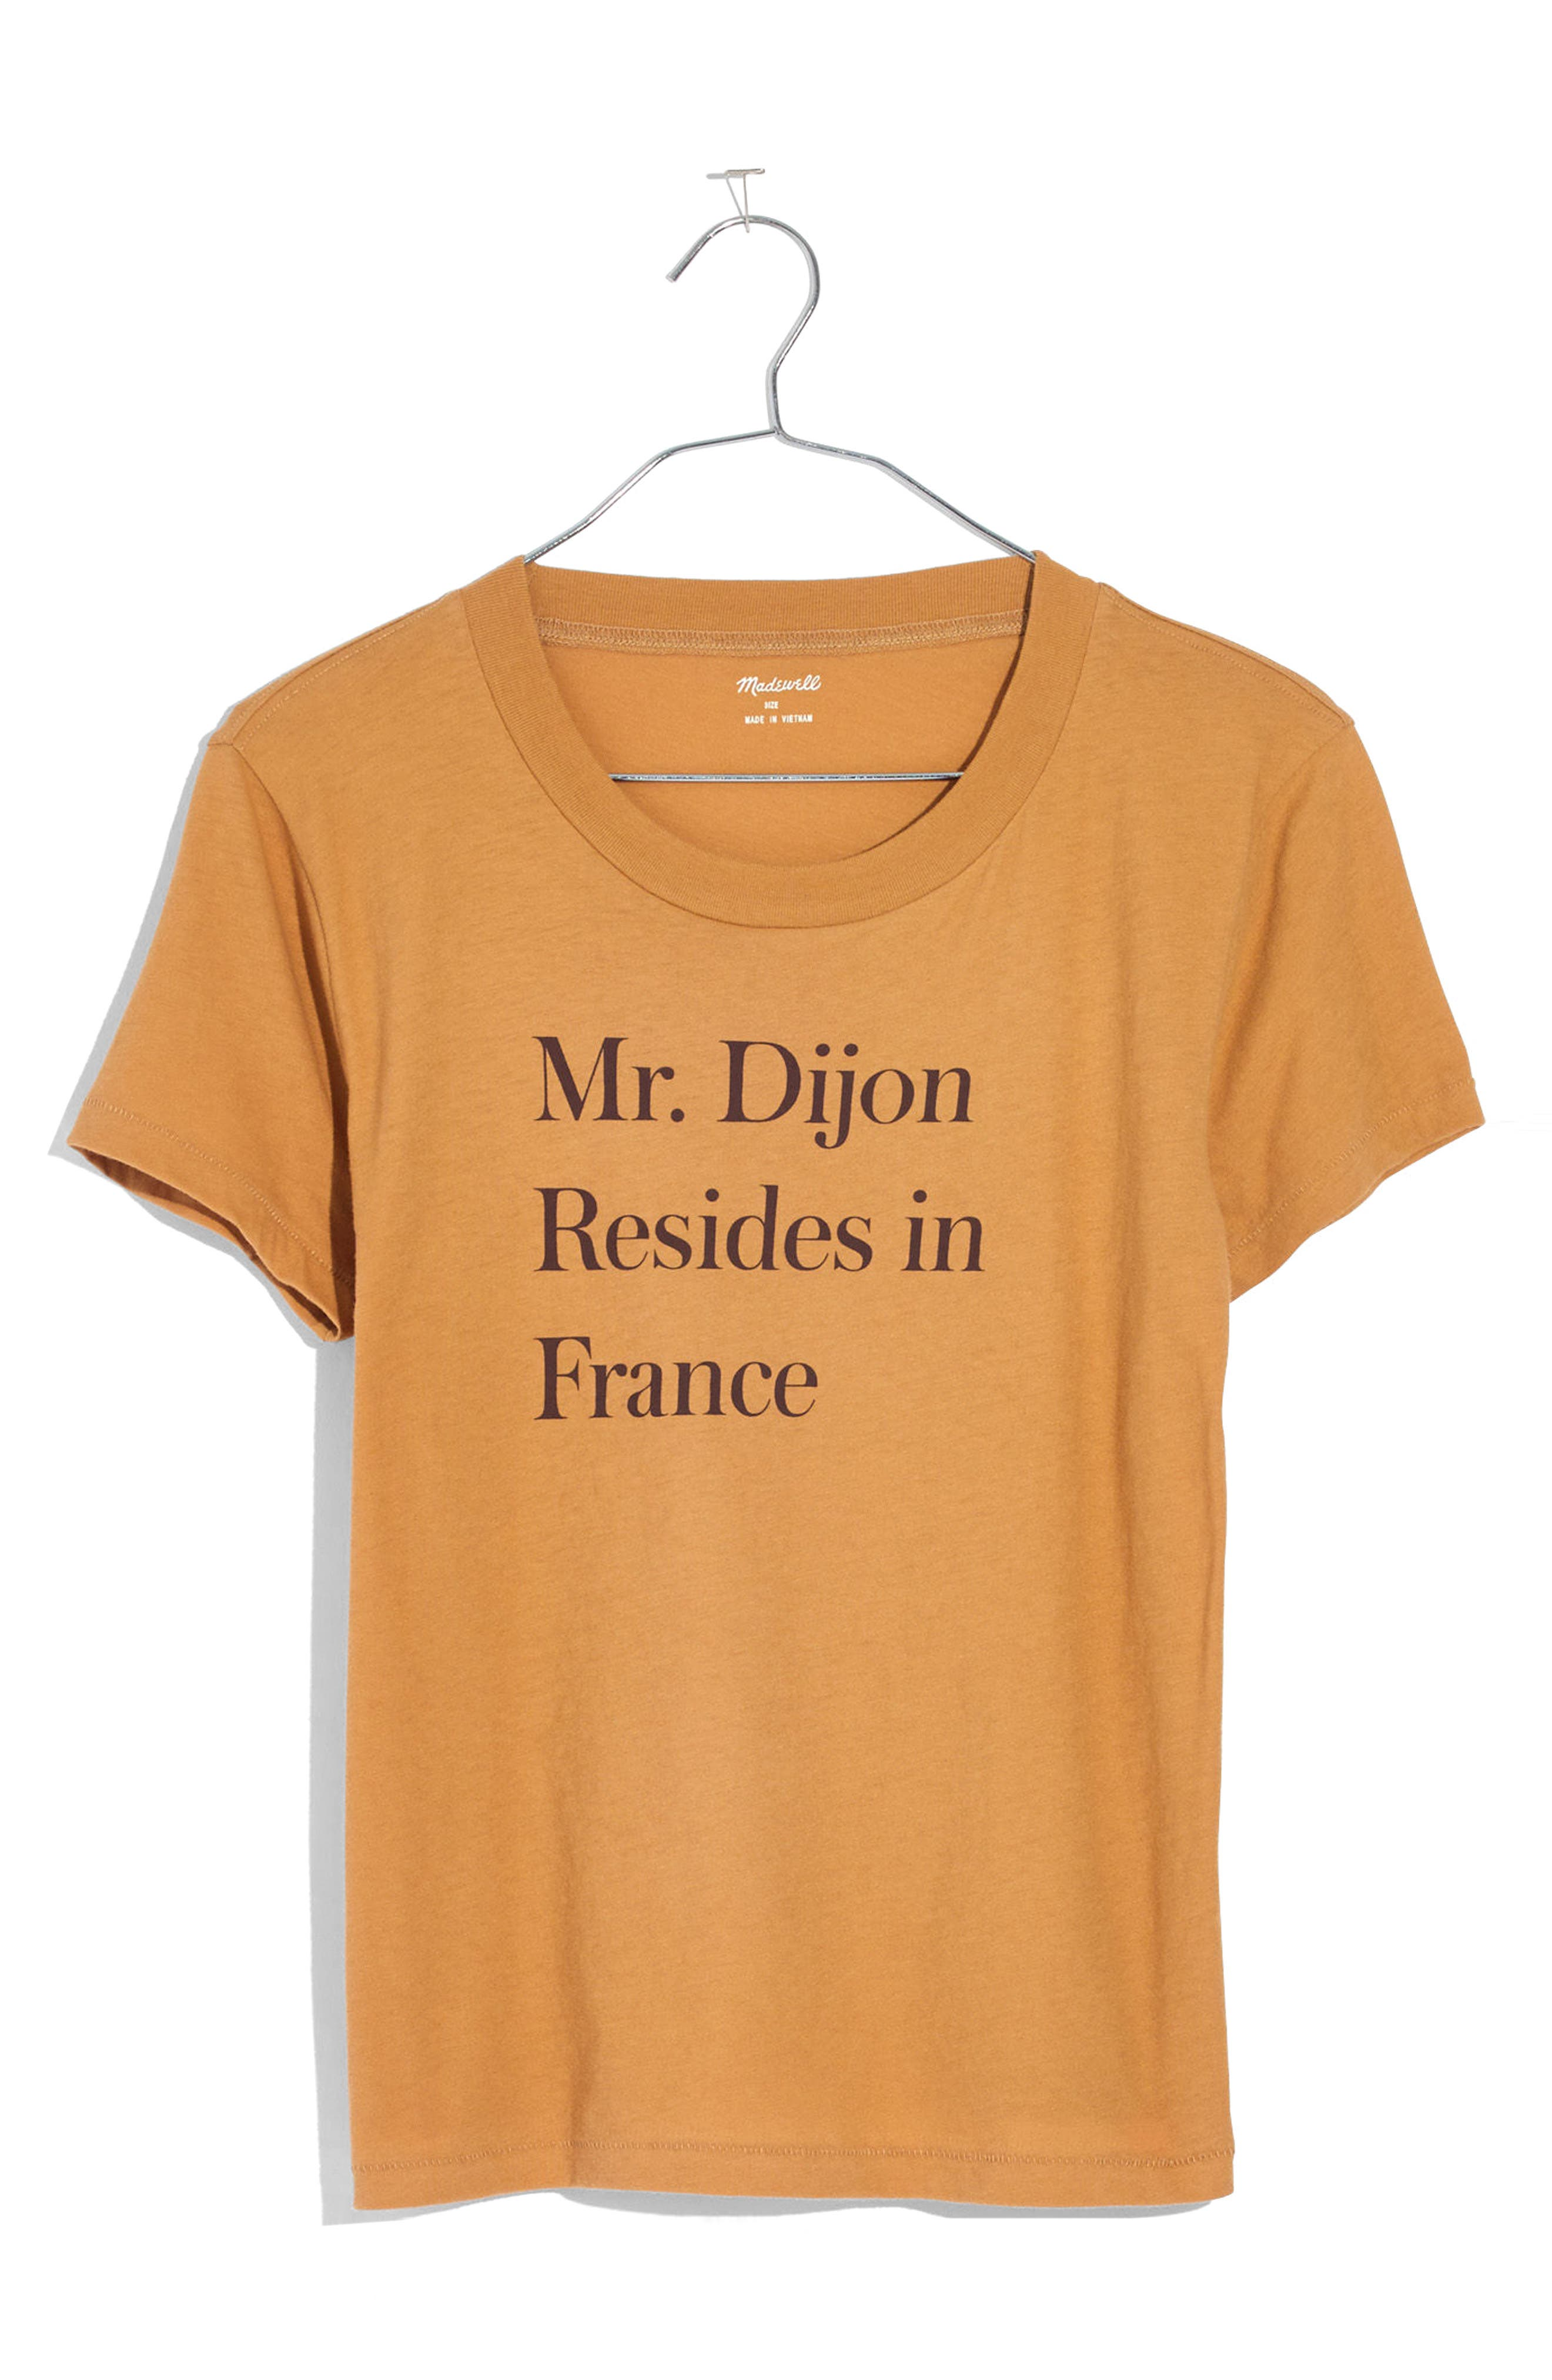 Mr. Dijon Graphic Tee,                         Main,                         color, Vintage Gold